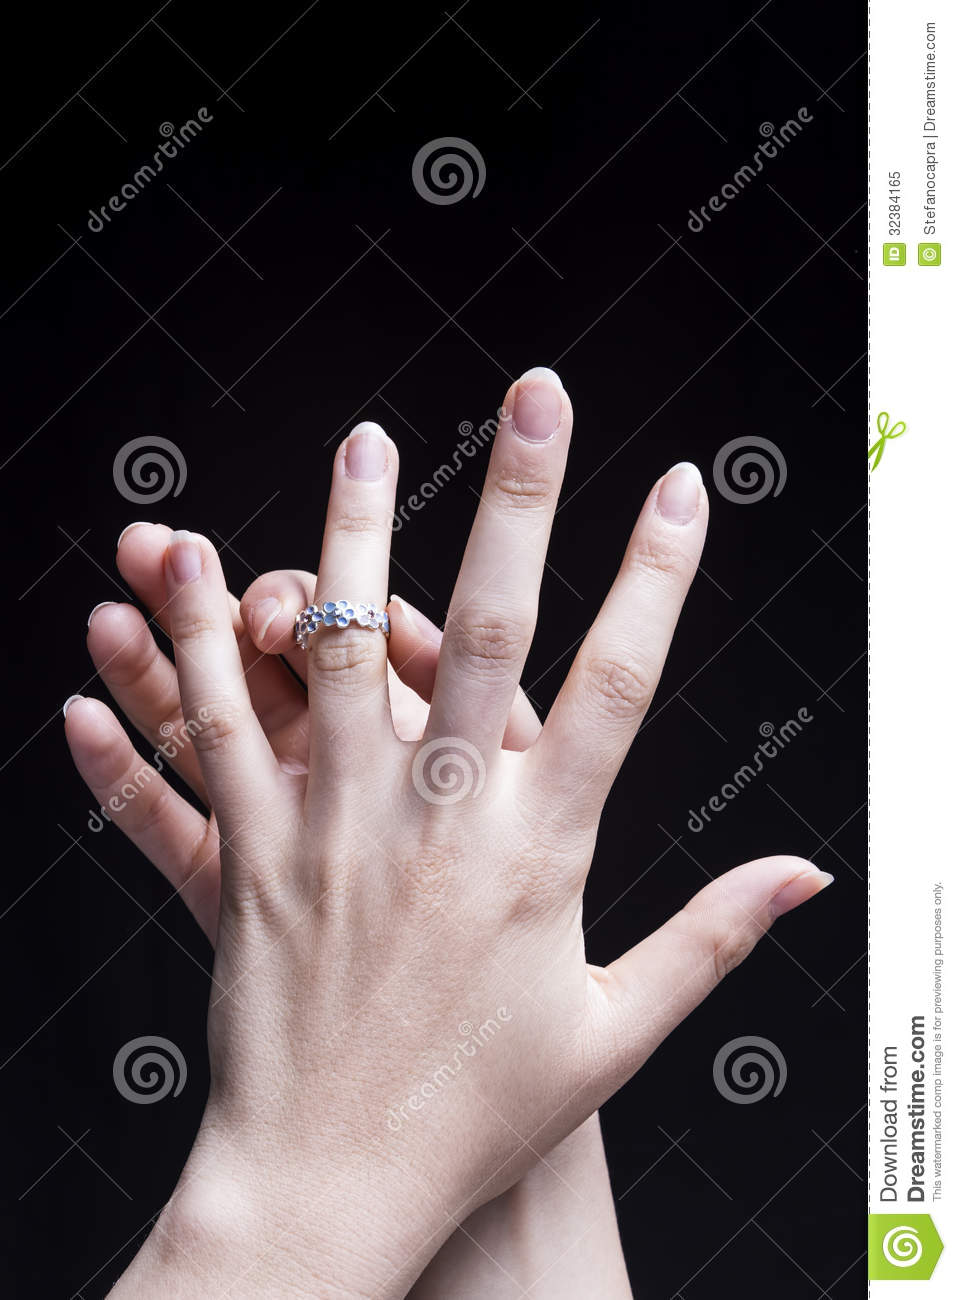 Female Hand Engagement stock image. Image of care, clean - 32384165